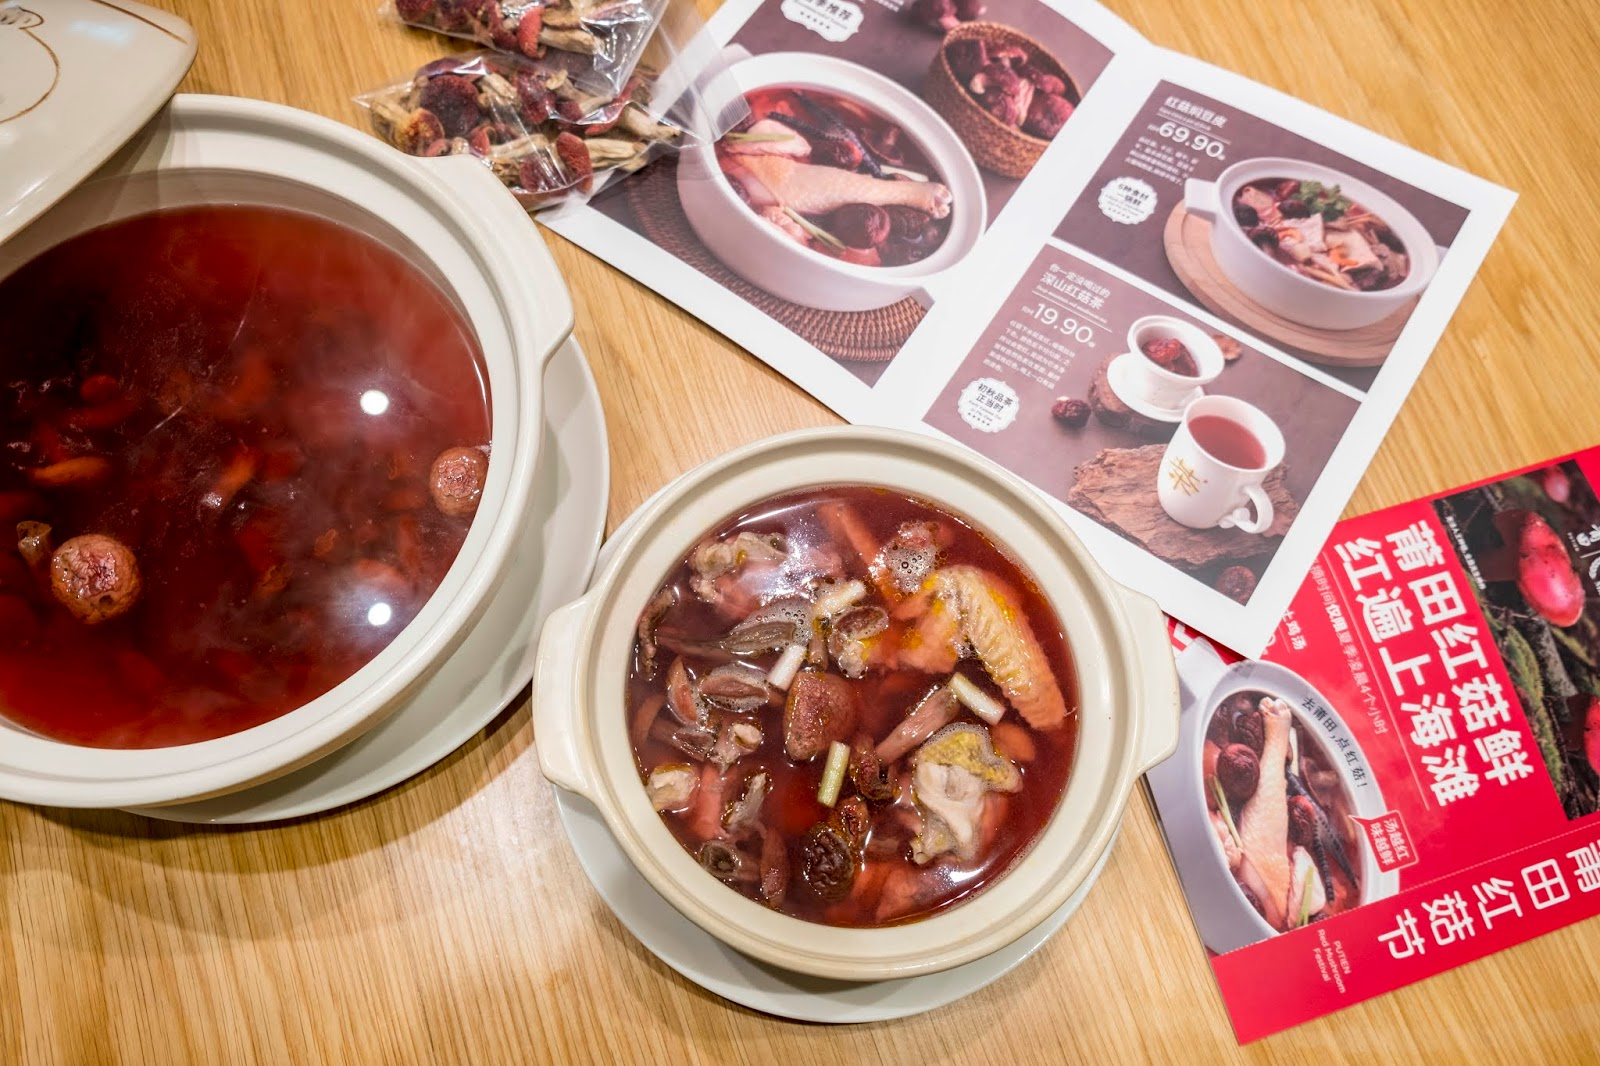 Red Mushroom the Seasonal Dishes at Putien Malaysia